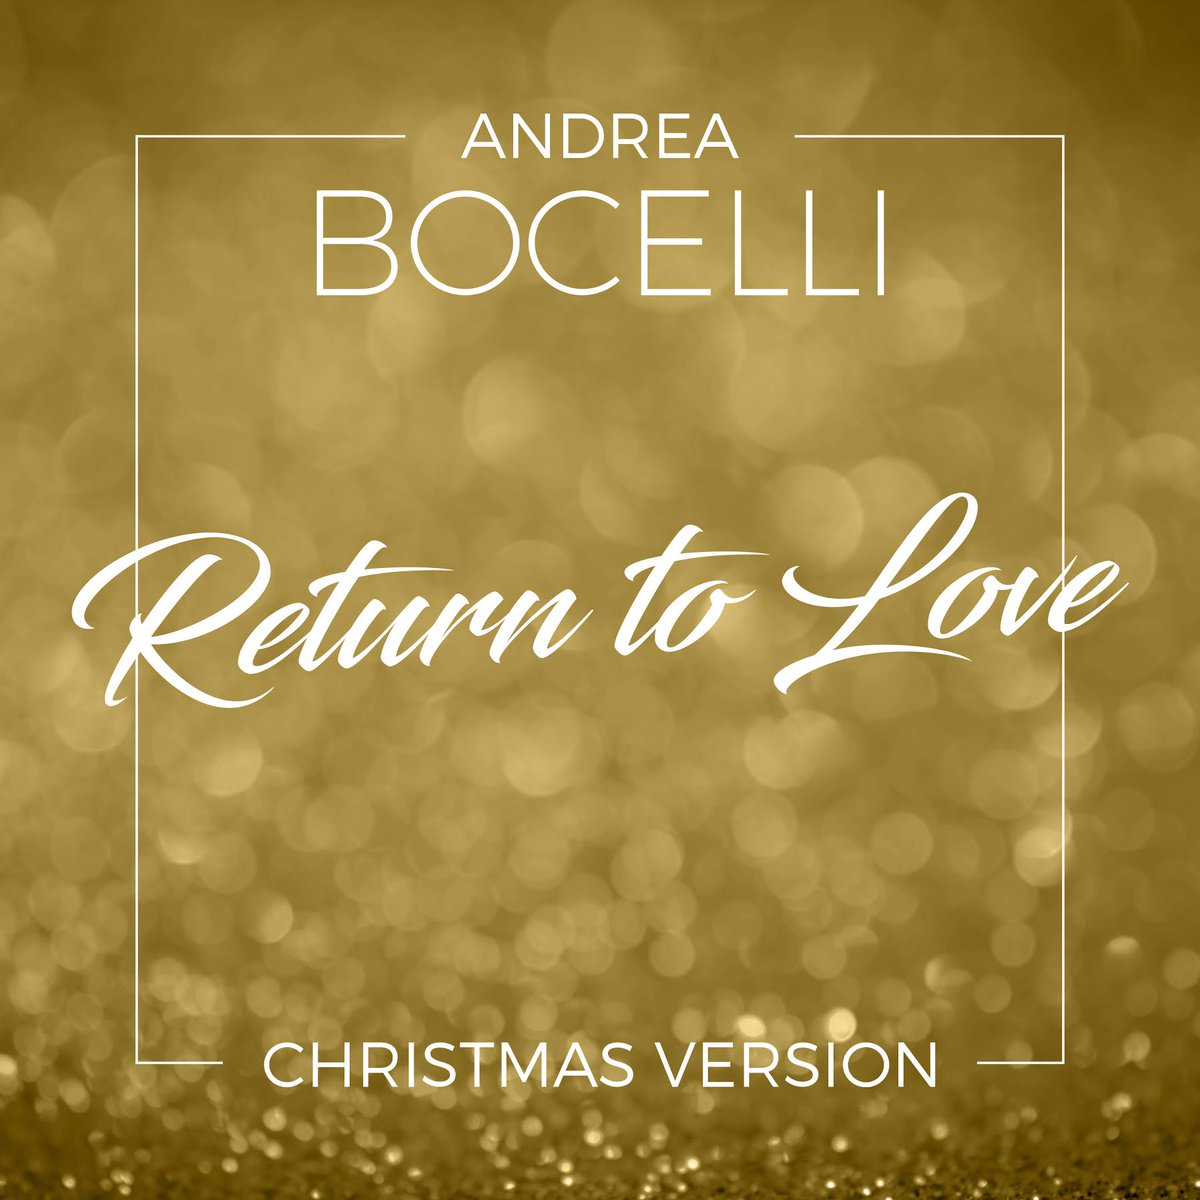 We are delighted to announce this very special gospel choir and orchestra version of 'Return to Love', just in time for #Christmas: AndreaBocelli.lnk.to/ReturnToLoveXm…